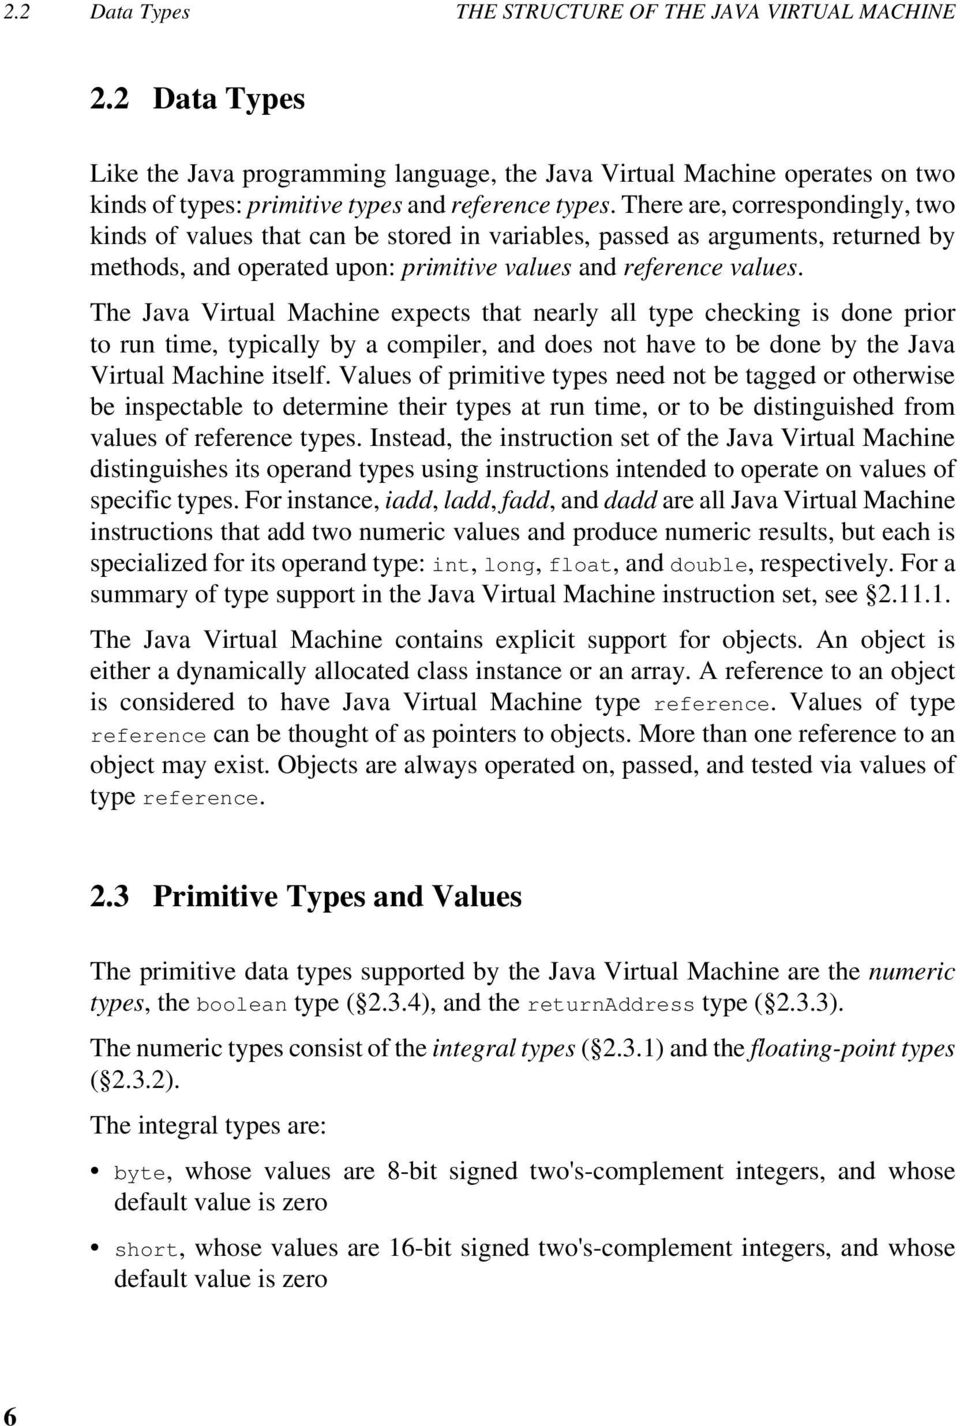 There are, correspondingly, two kinds of values that can be stored in variables, passed as arguments, returned by methods, and operated upon: primitive values and reference values.